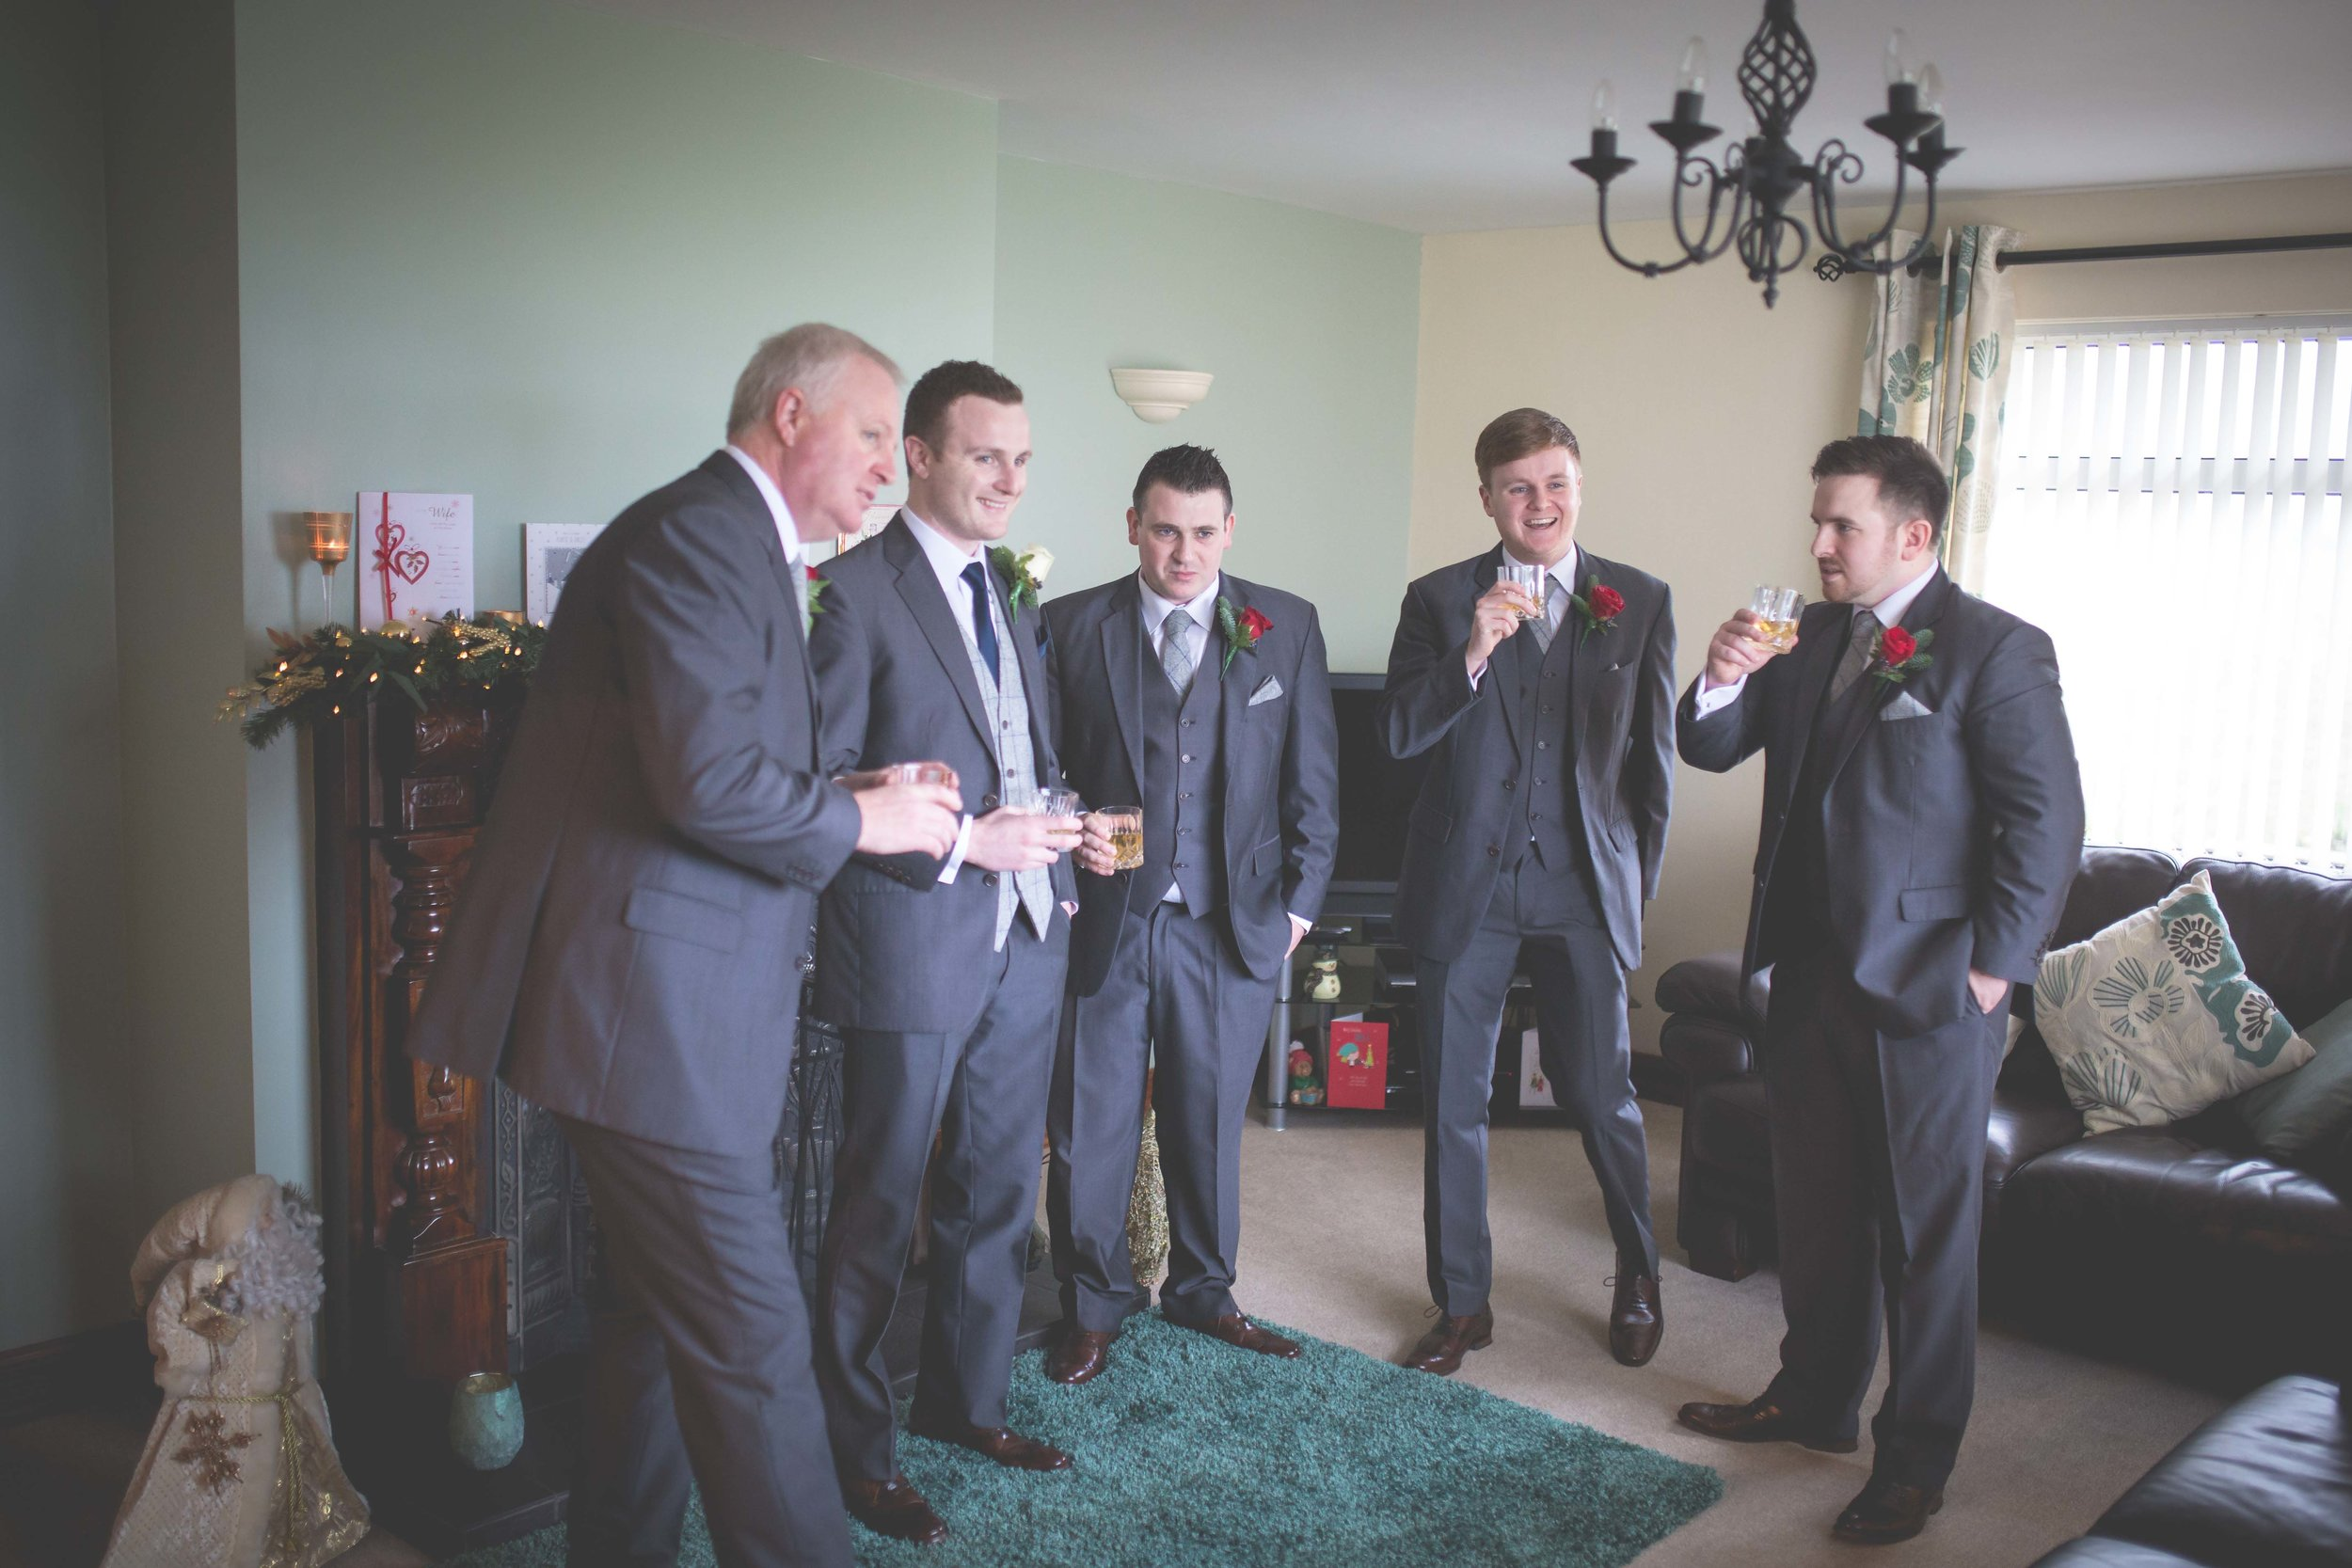 MaryJo_Conor_Mageean_Groom_Prep-22.jpg